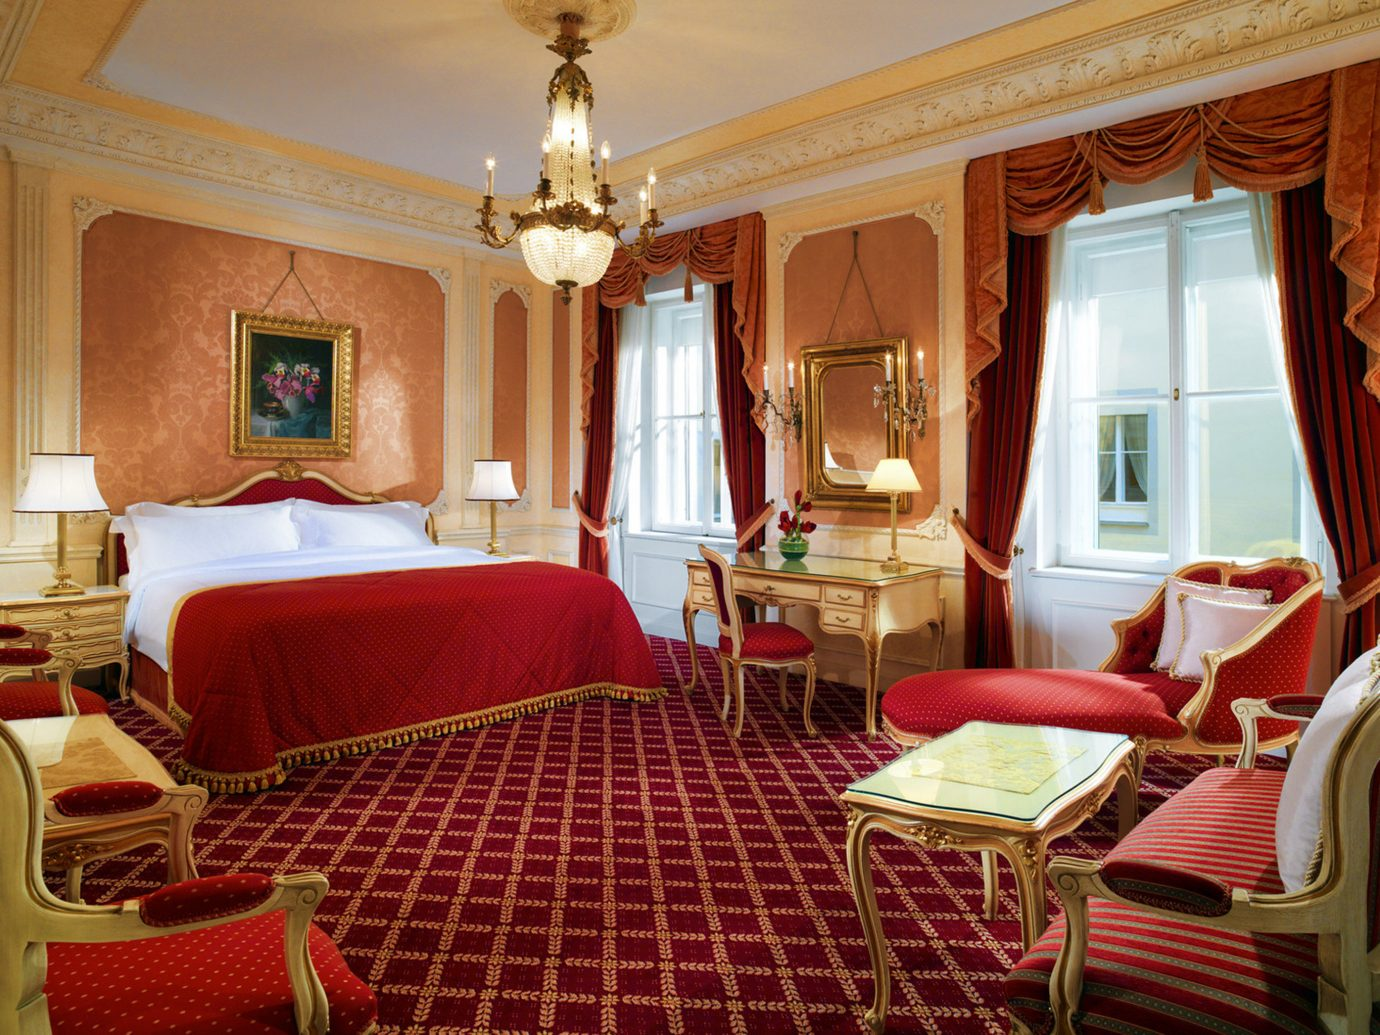 bedroom at Hotel Imperial in Vienna